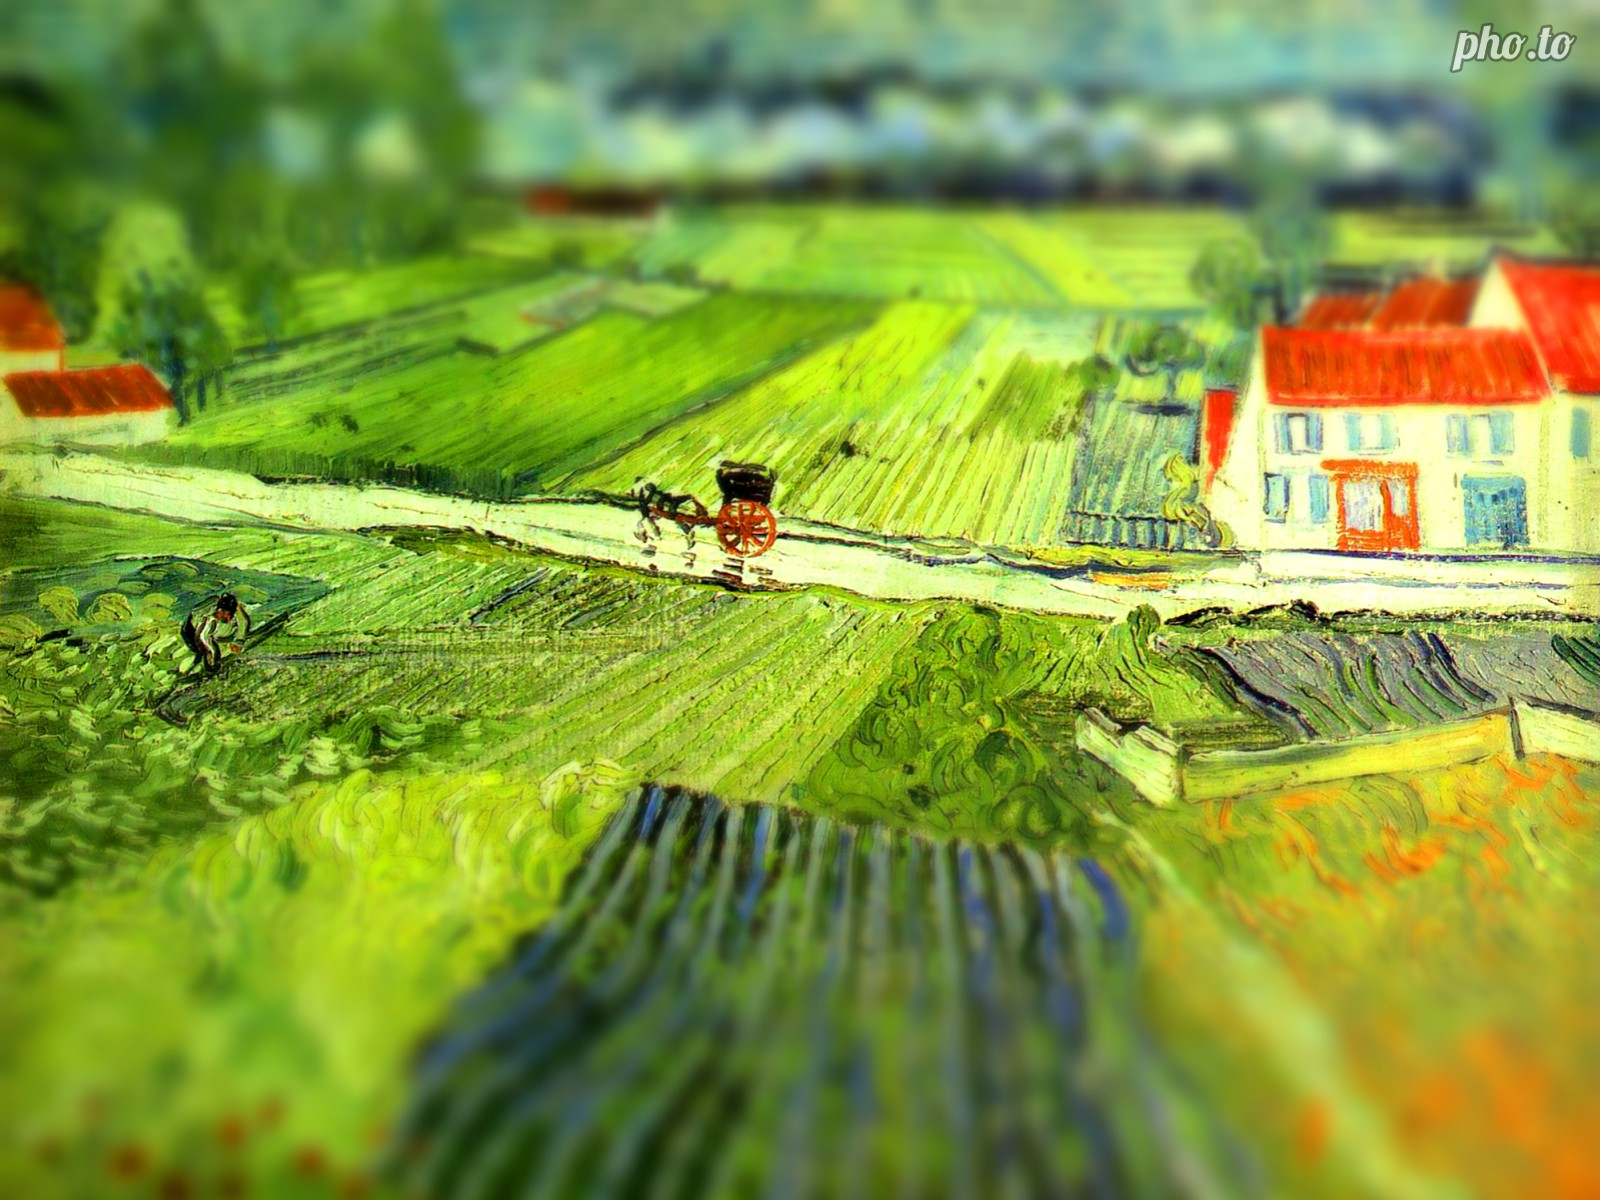 Tilt Shift style allows to create an awesome 3D effect